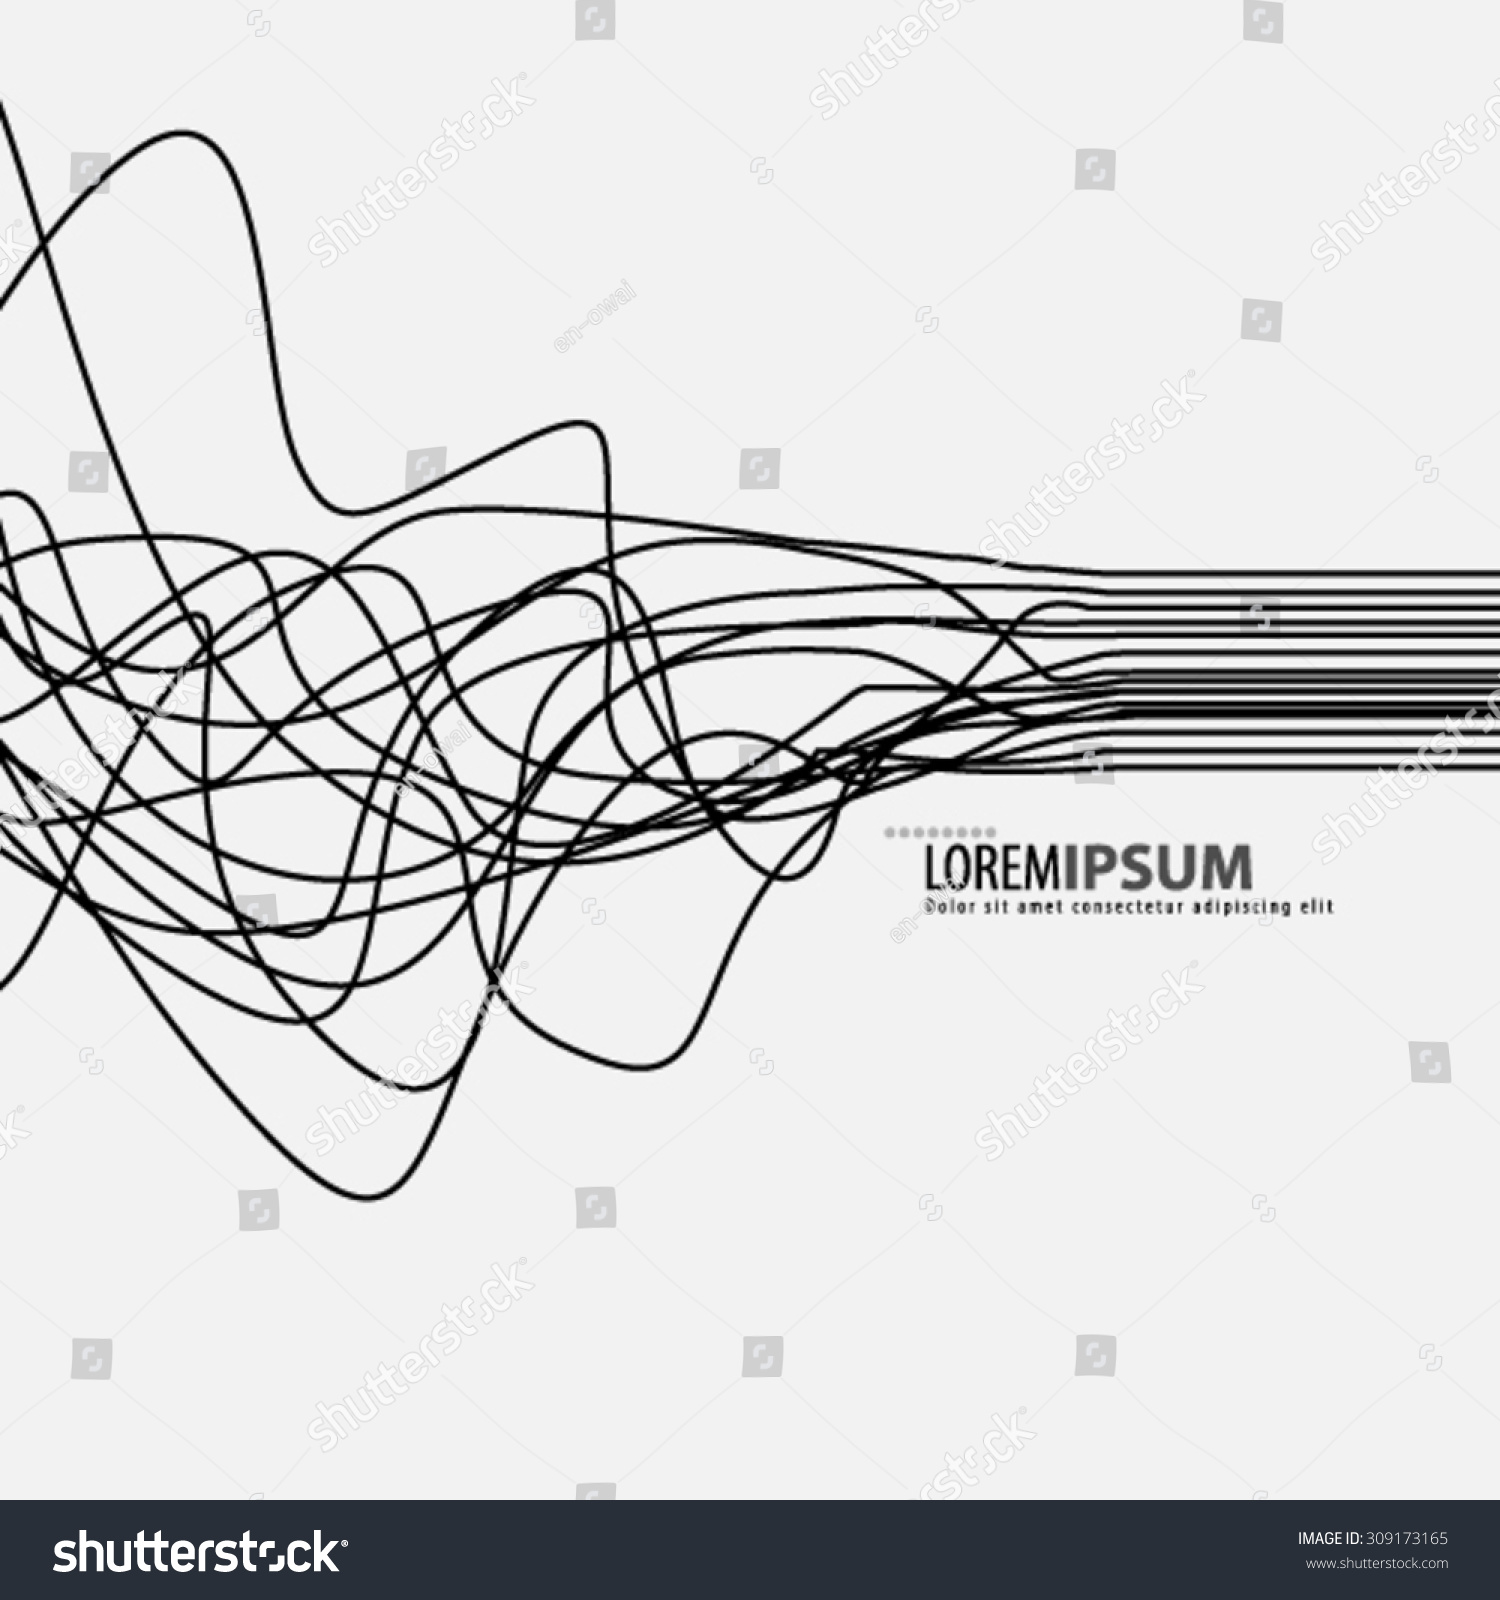 Drawing Smooth Curved Lines In Photo : Smooth curve lines digital background stock vector